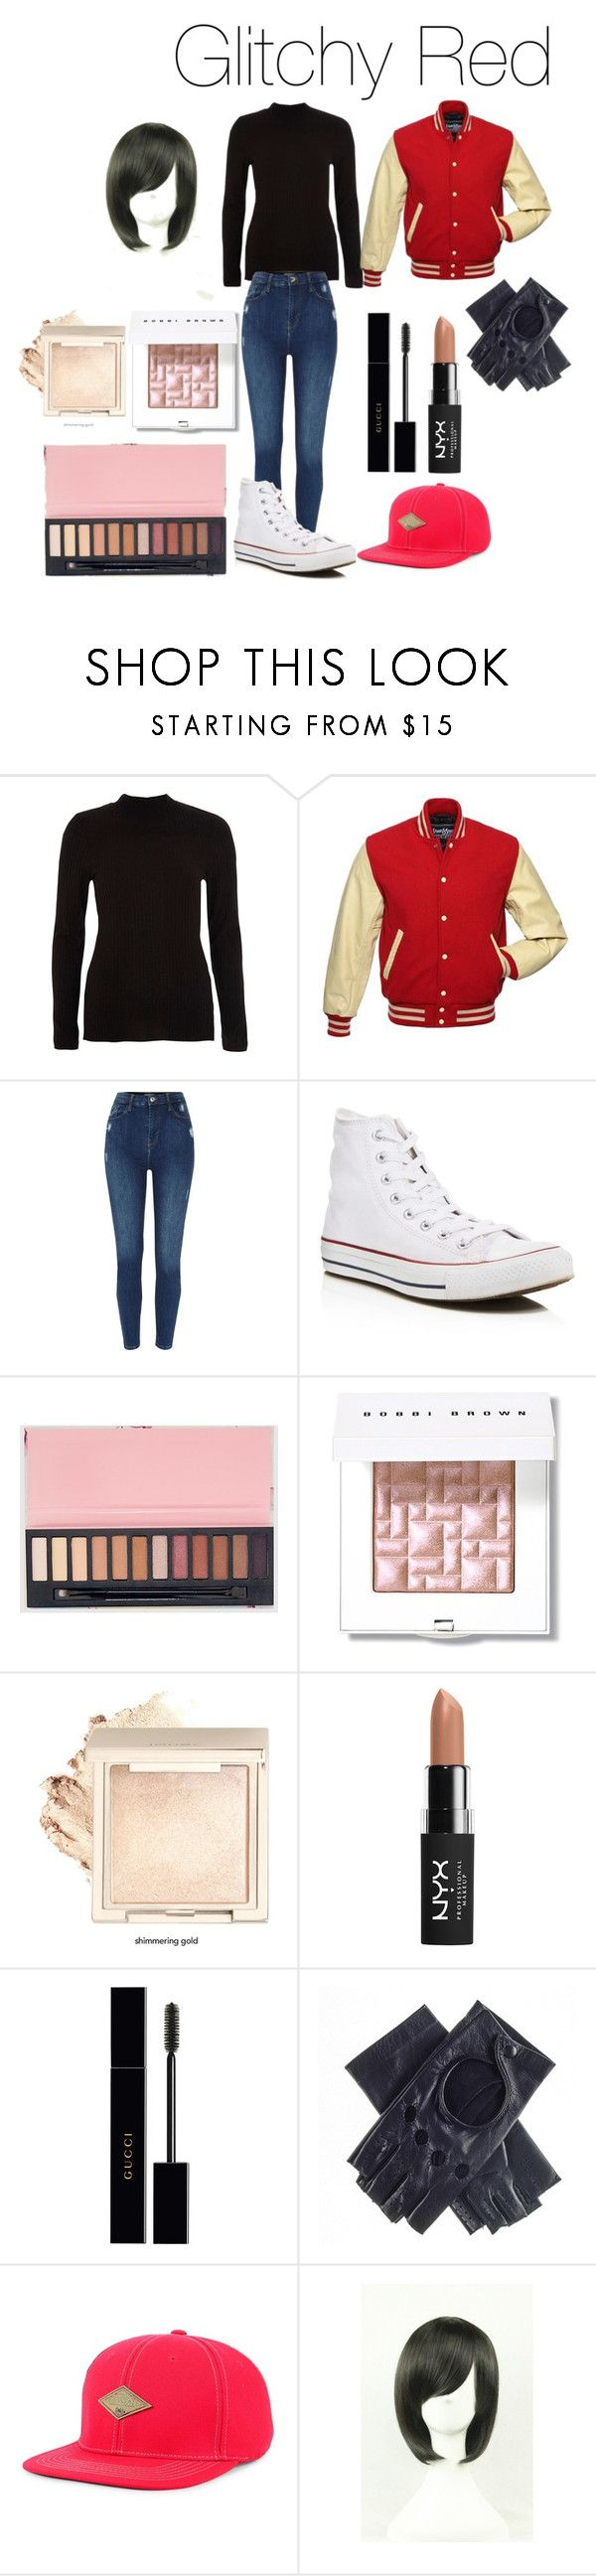 """Glitchy Red (Creepypasta)"" by tori-camilleri on Polyvore featuring River Island, Converse, Bobbi Brown Cosmetics, NYX, Gucci, Black, Top of the World and WithChic"